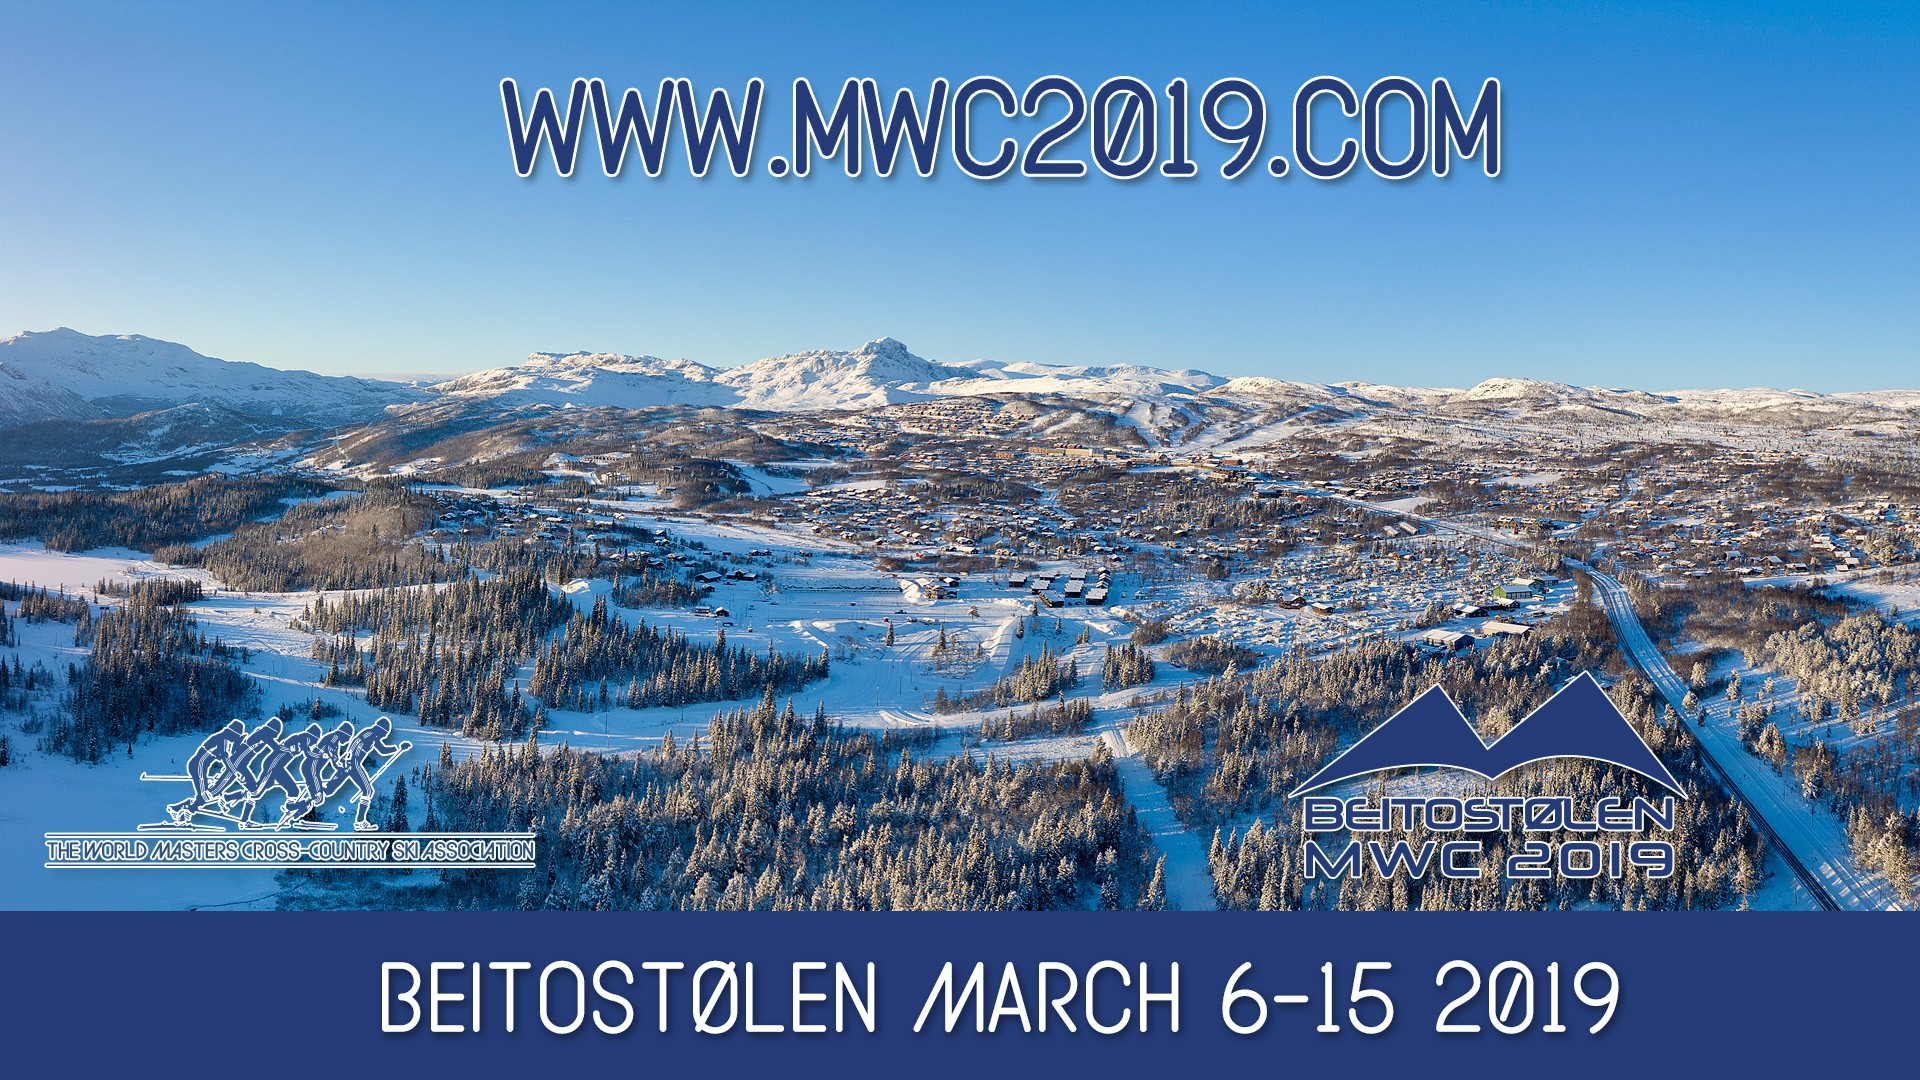 March 2019 Calendar Landscape Más Recientemente Liberado Masters World Cup 2019 Of March 2019 Calendar Landscape Más Recientemente Liberado December 2019 Calendar